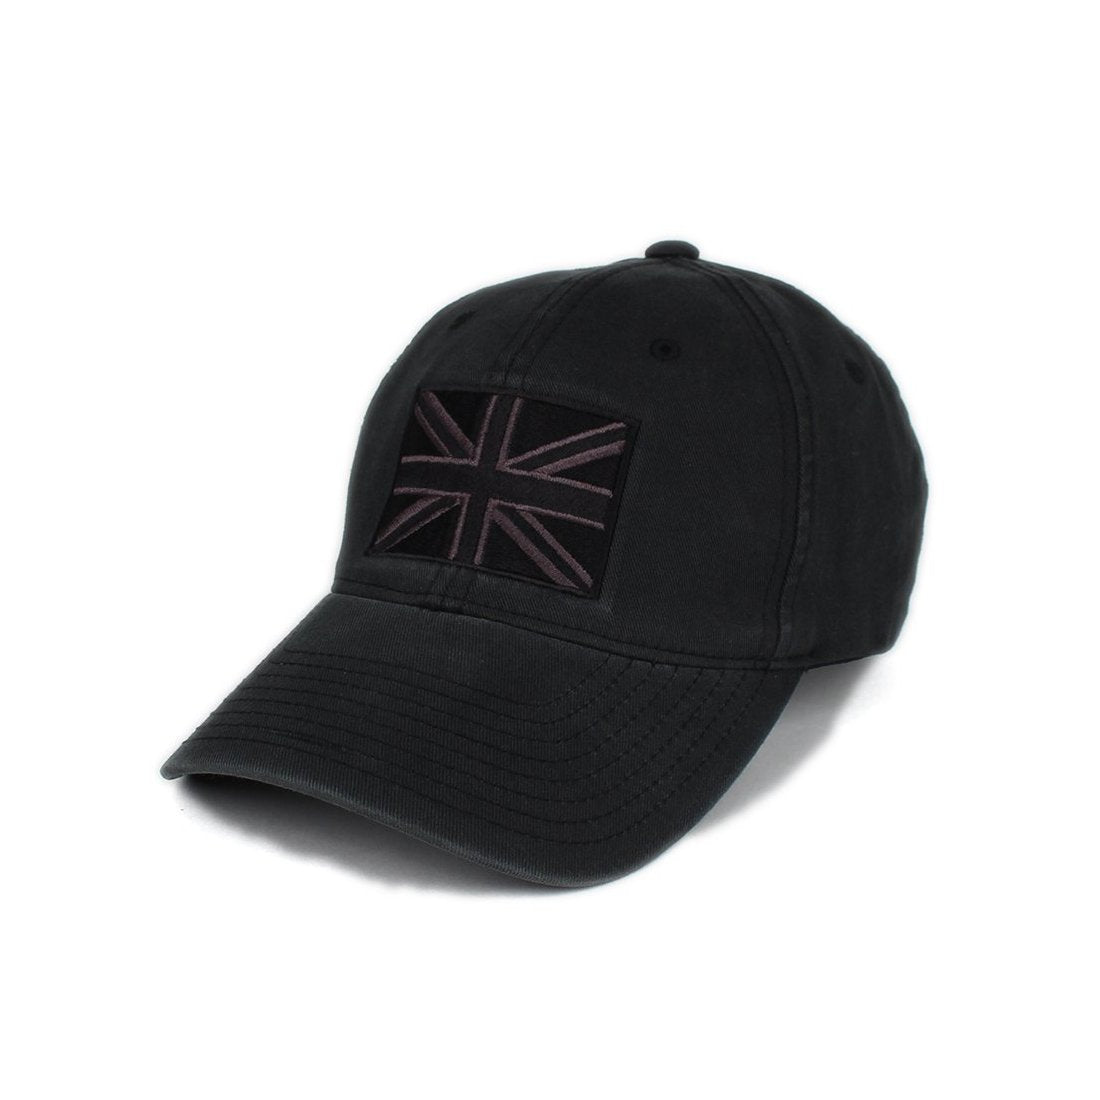 British Flag - Black/Grey - Hats - Pipe Hitters Union